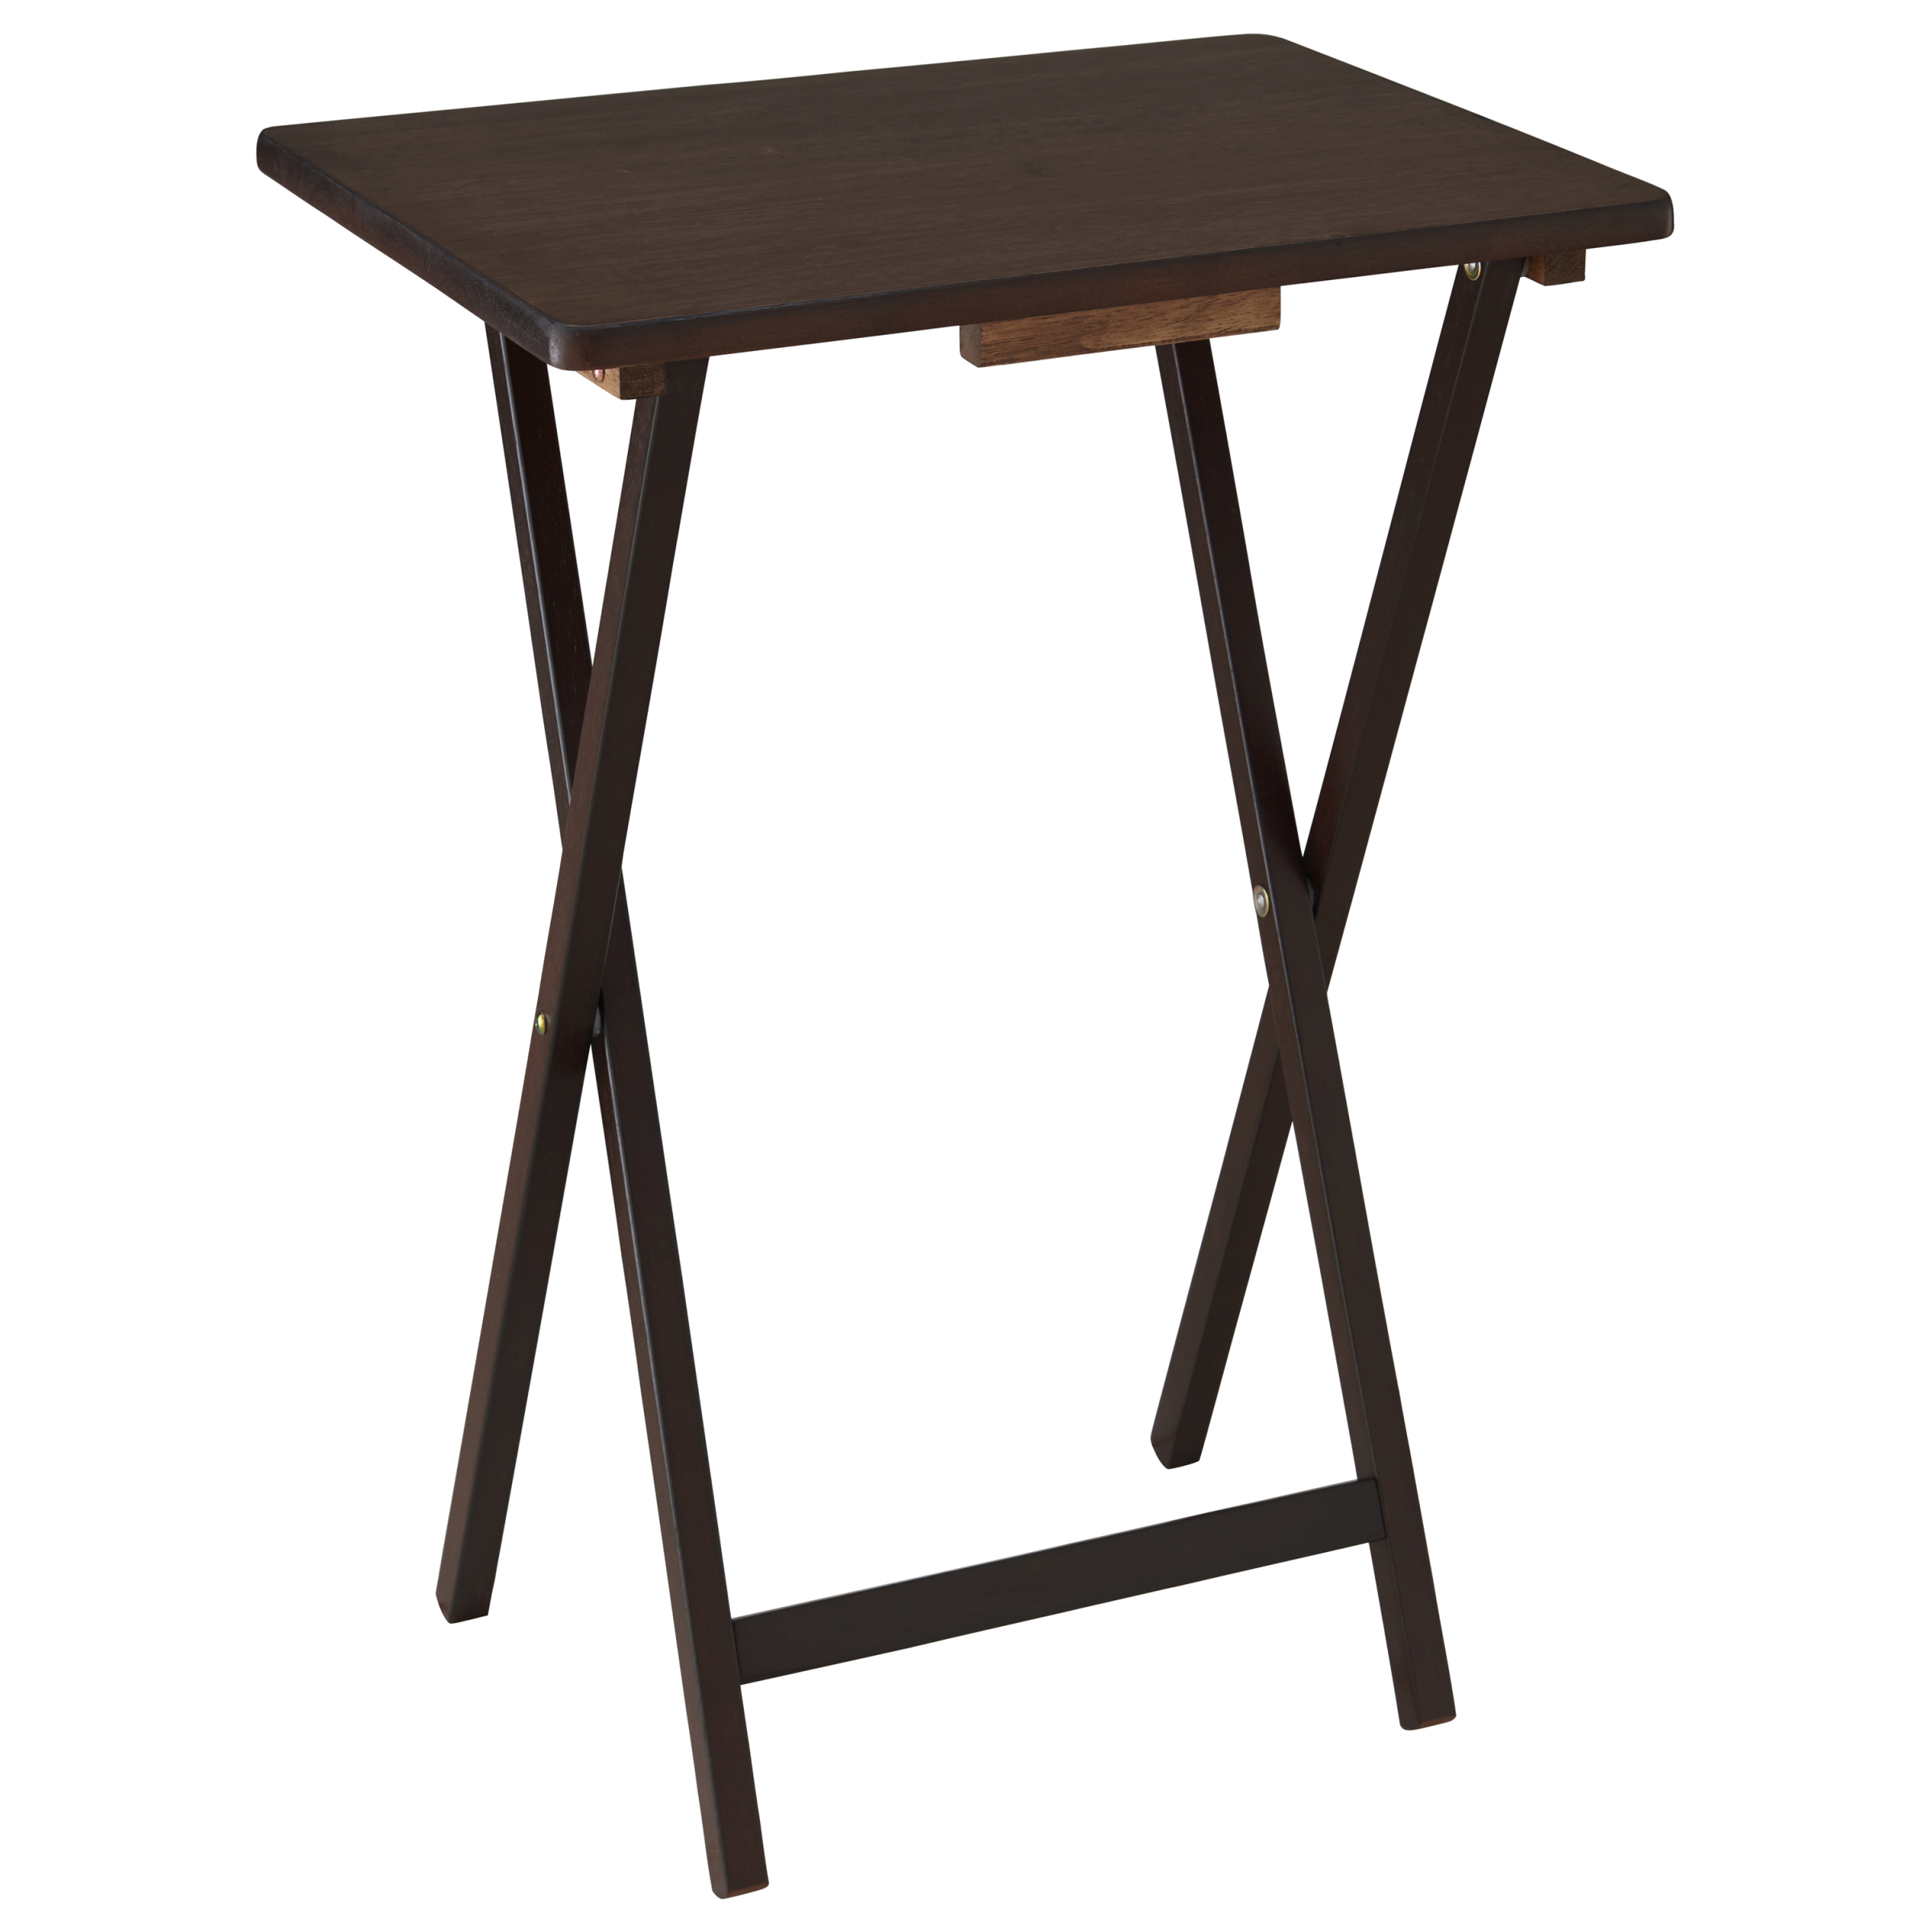 Mainstays 5-Piece Folding Tray Table Set in Walnut